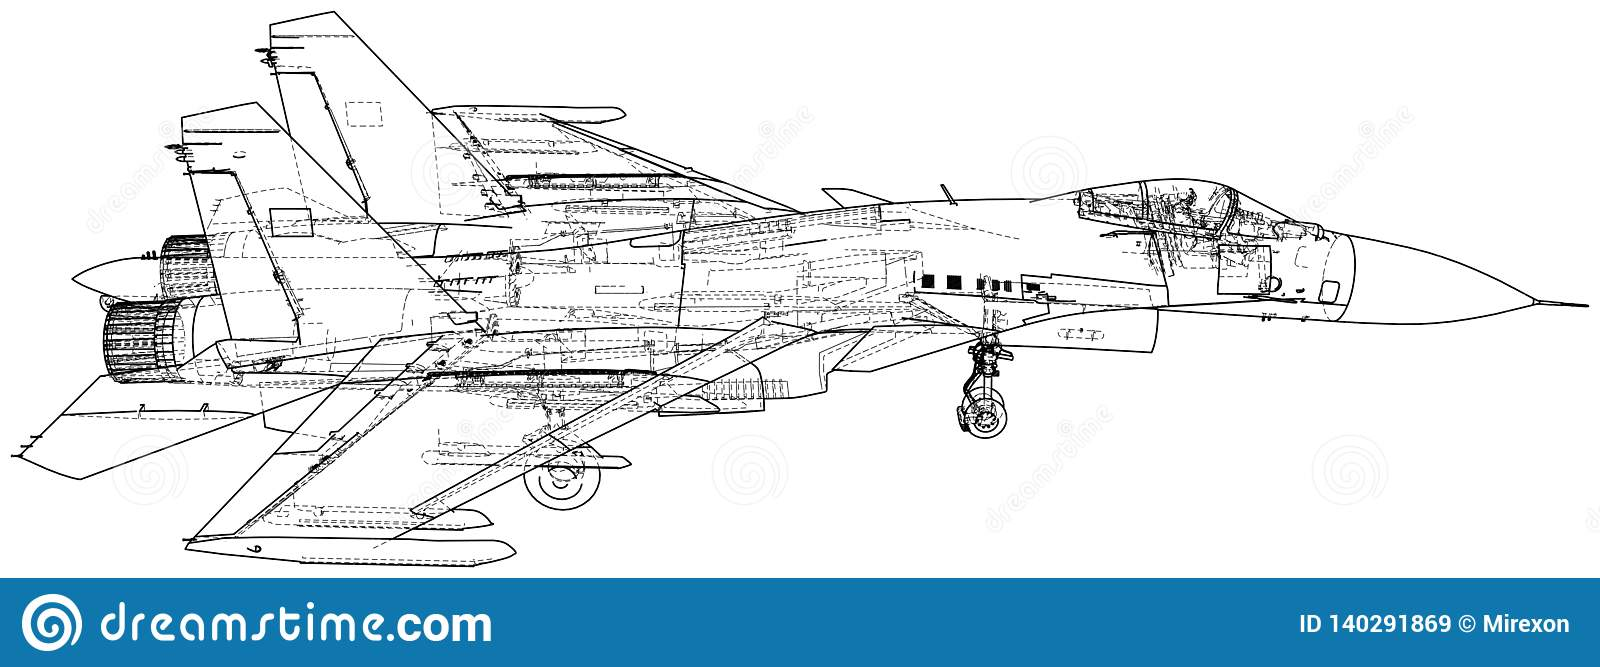 Swell Fighter Jet Vector Wireframe Concept Created Illustration Of 3D Wiring Digital Resources Funapmognl